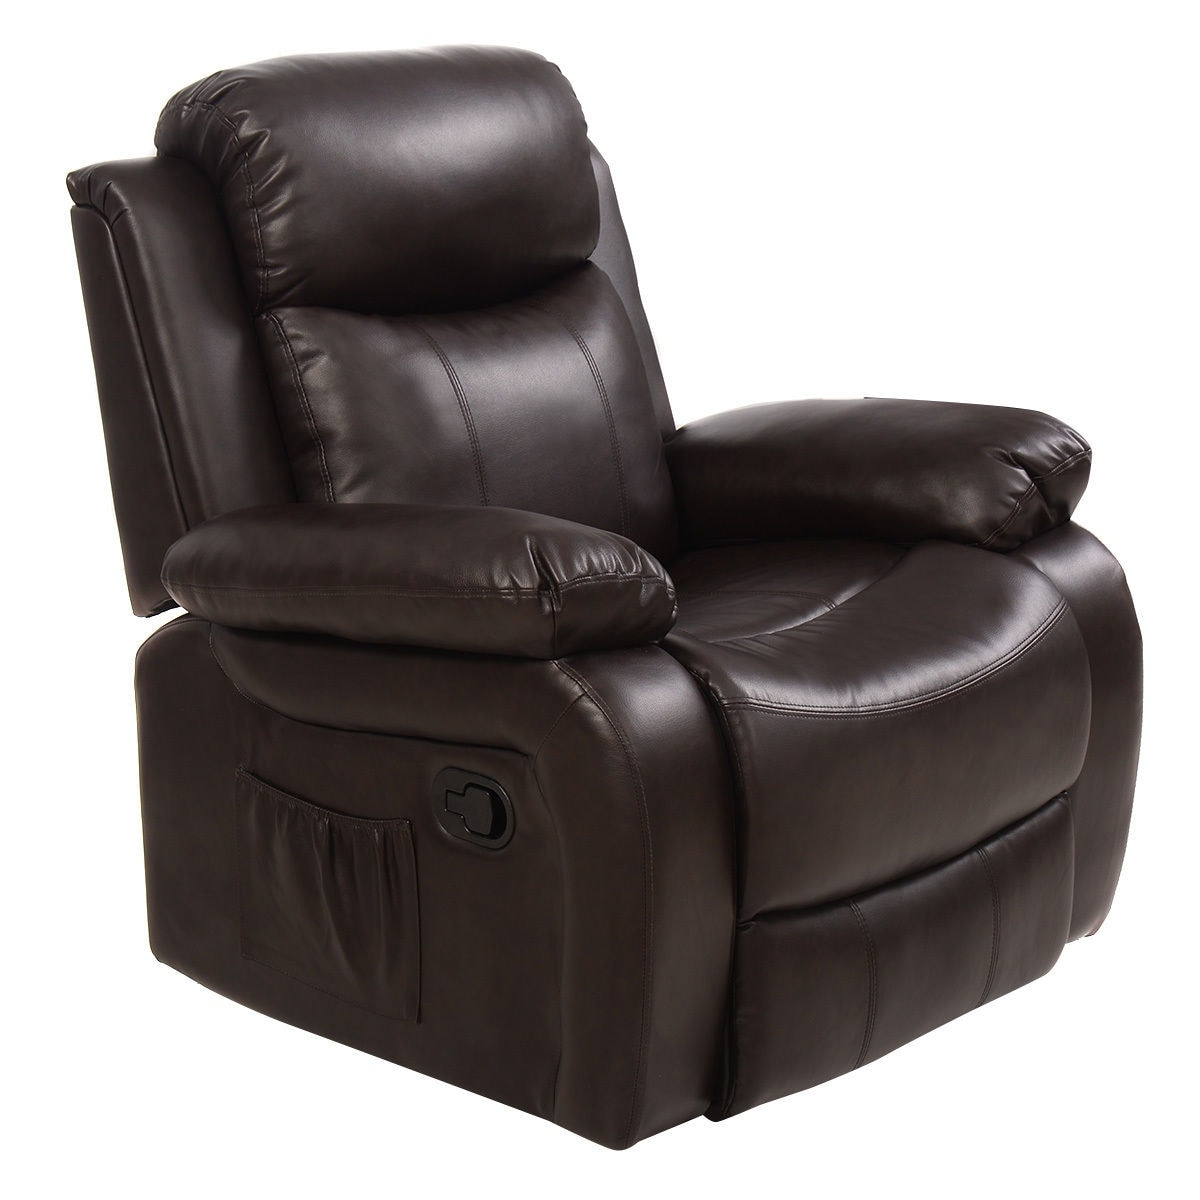 Shop Costway Ergonomic Massage Sofa Chair Head Supported Recliner Swivel  Heating W/ Control   Free Shipping Today   Overstock.com   18606361